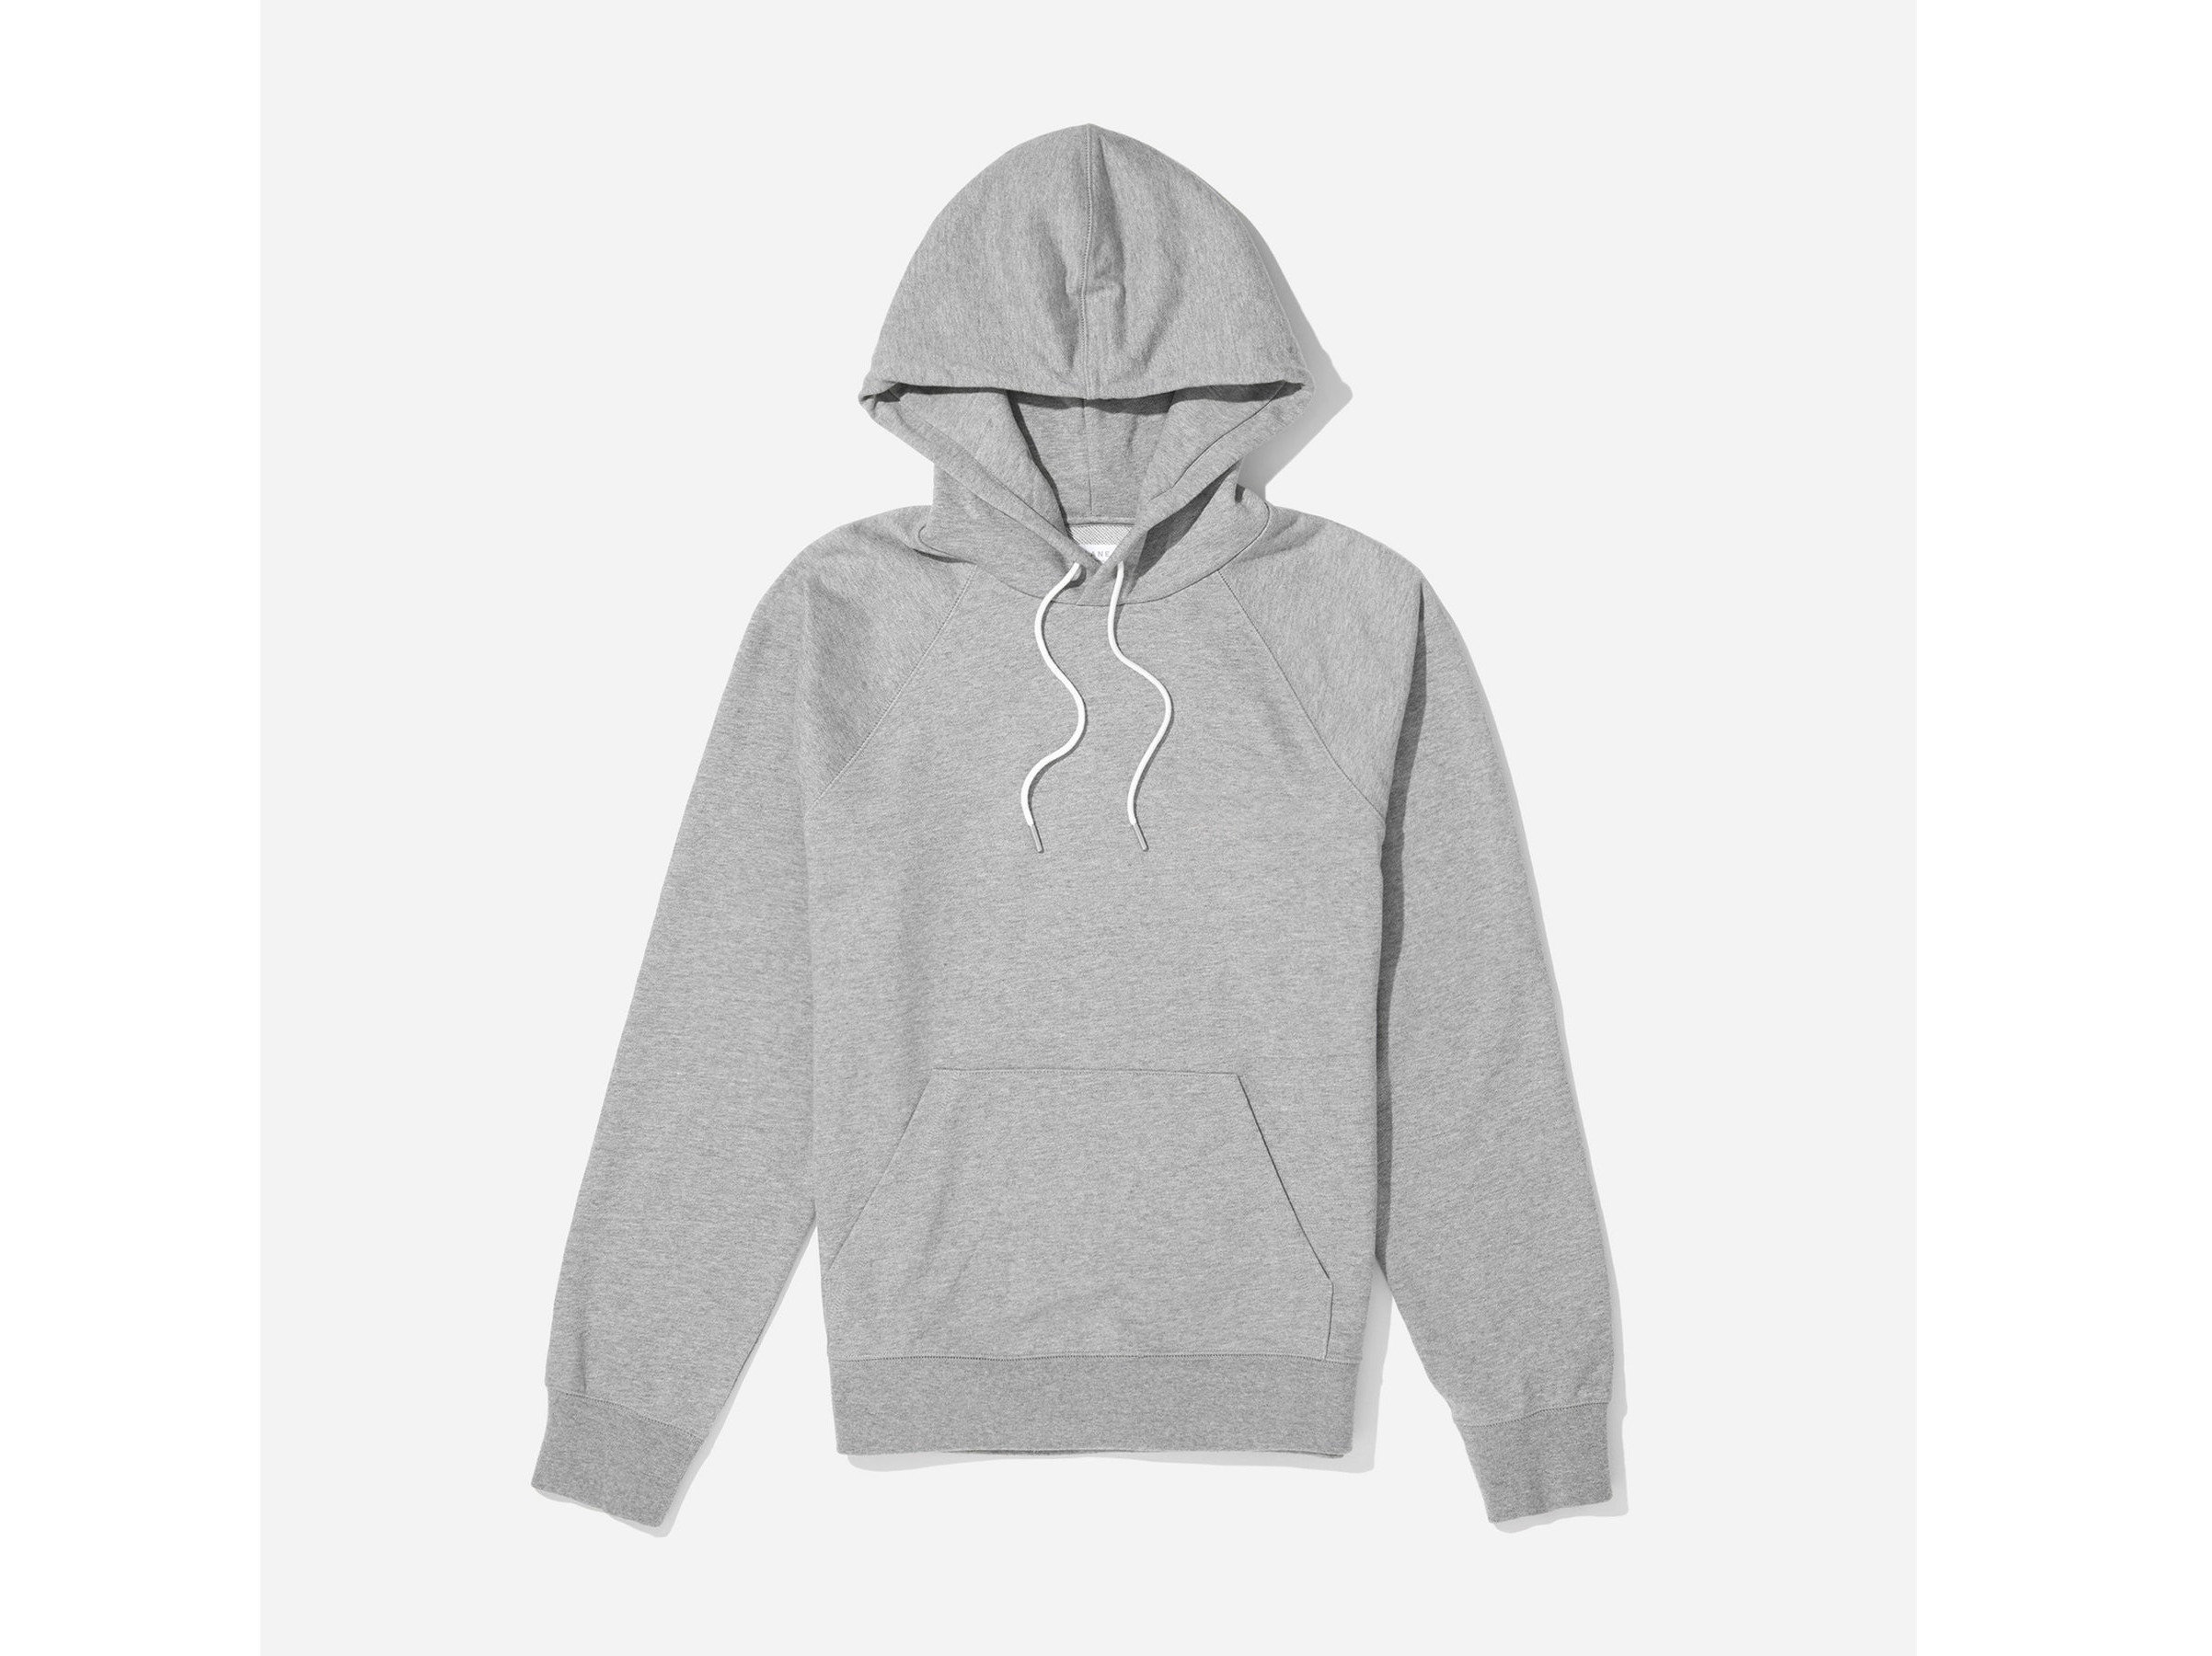 Style + Design Travel Shop hood hoodie clothing outerwear sweatshirt product sleeve neck woolen product design